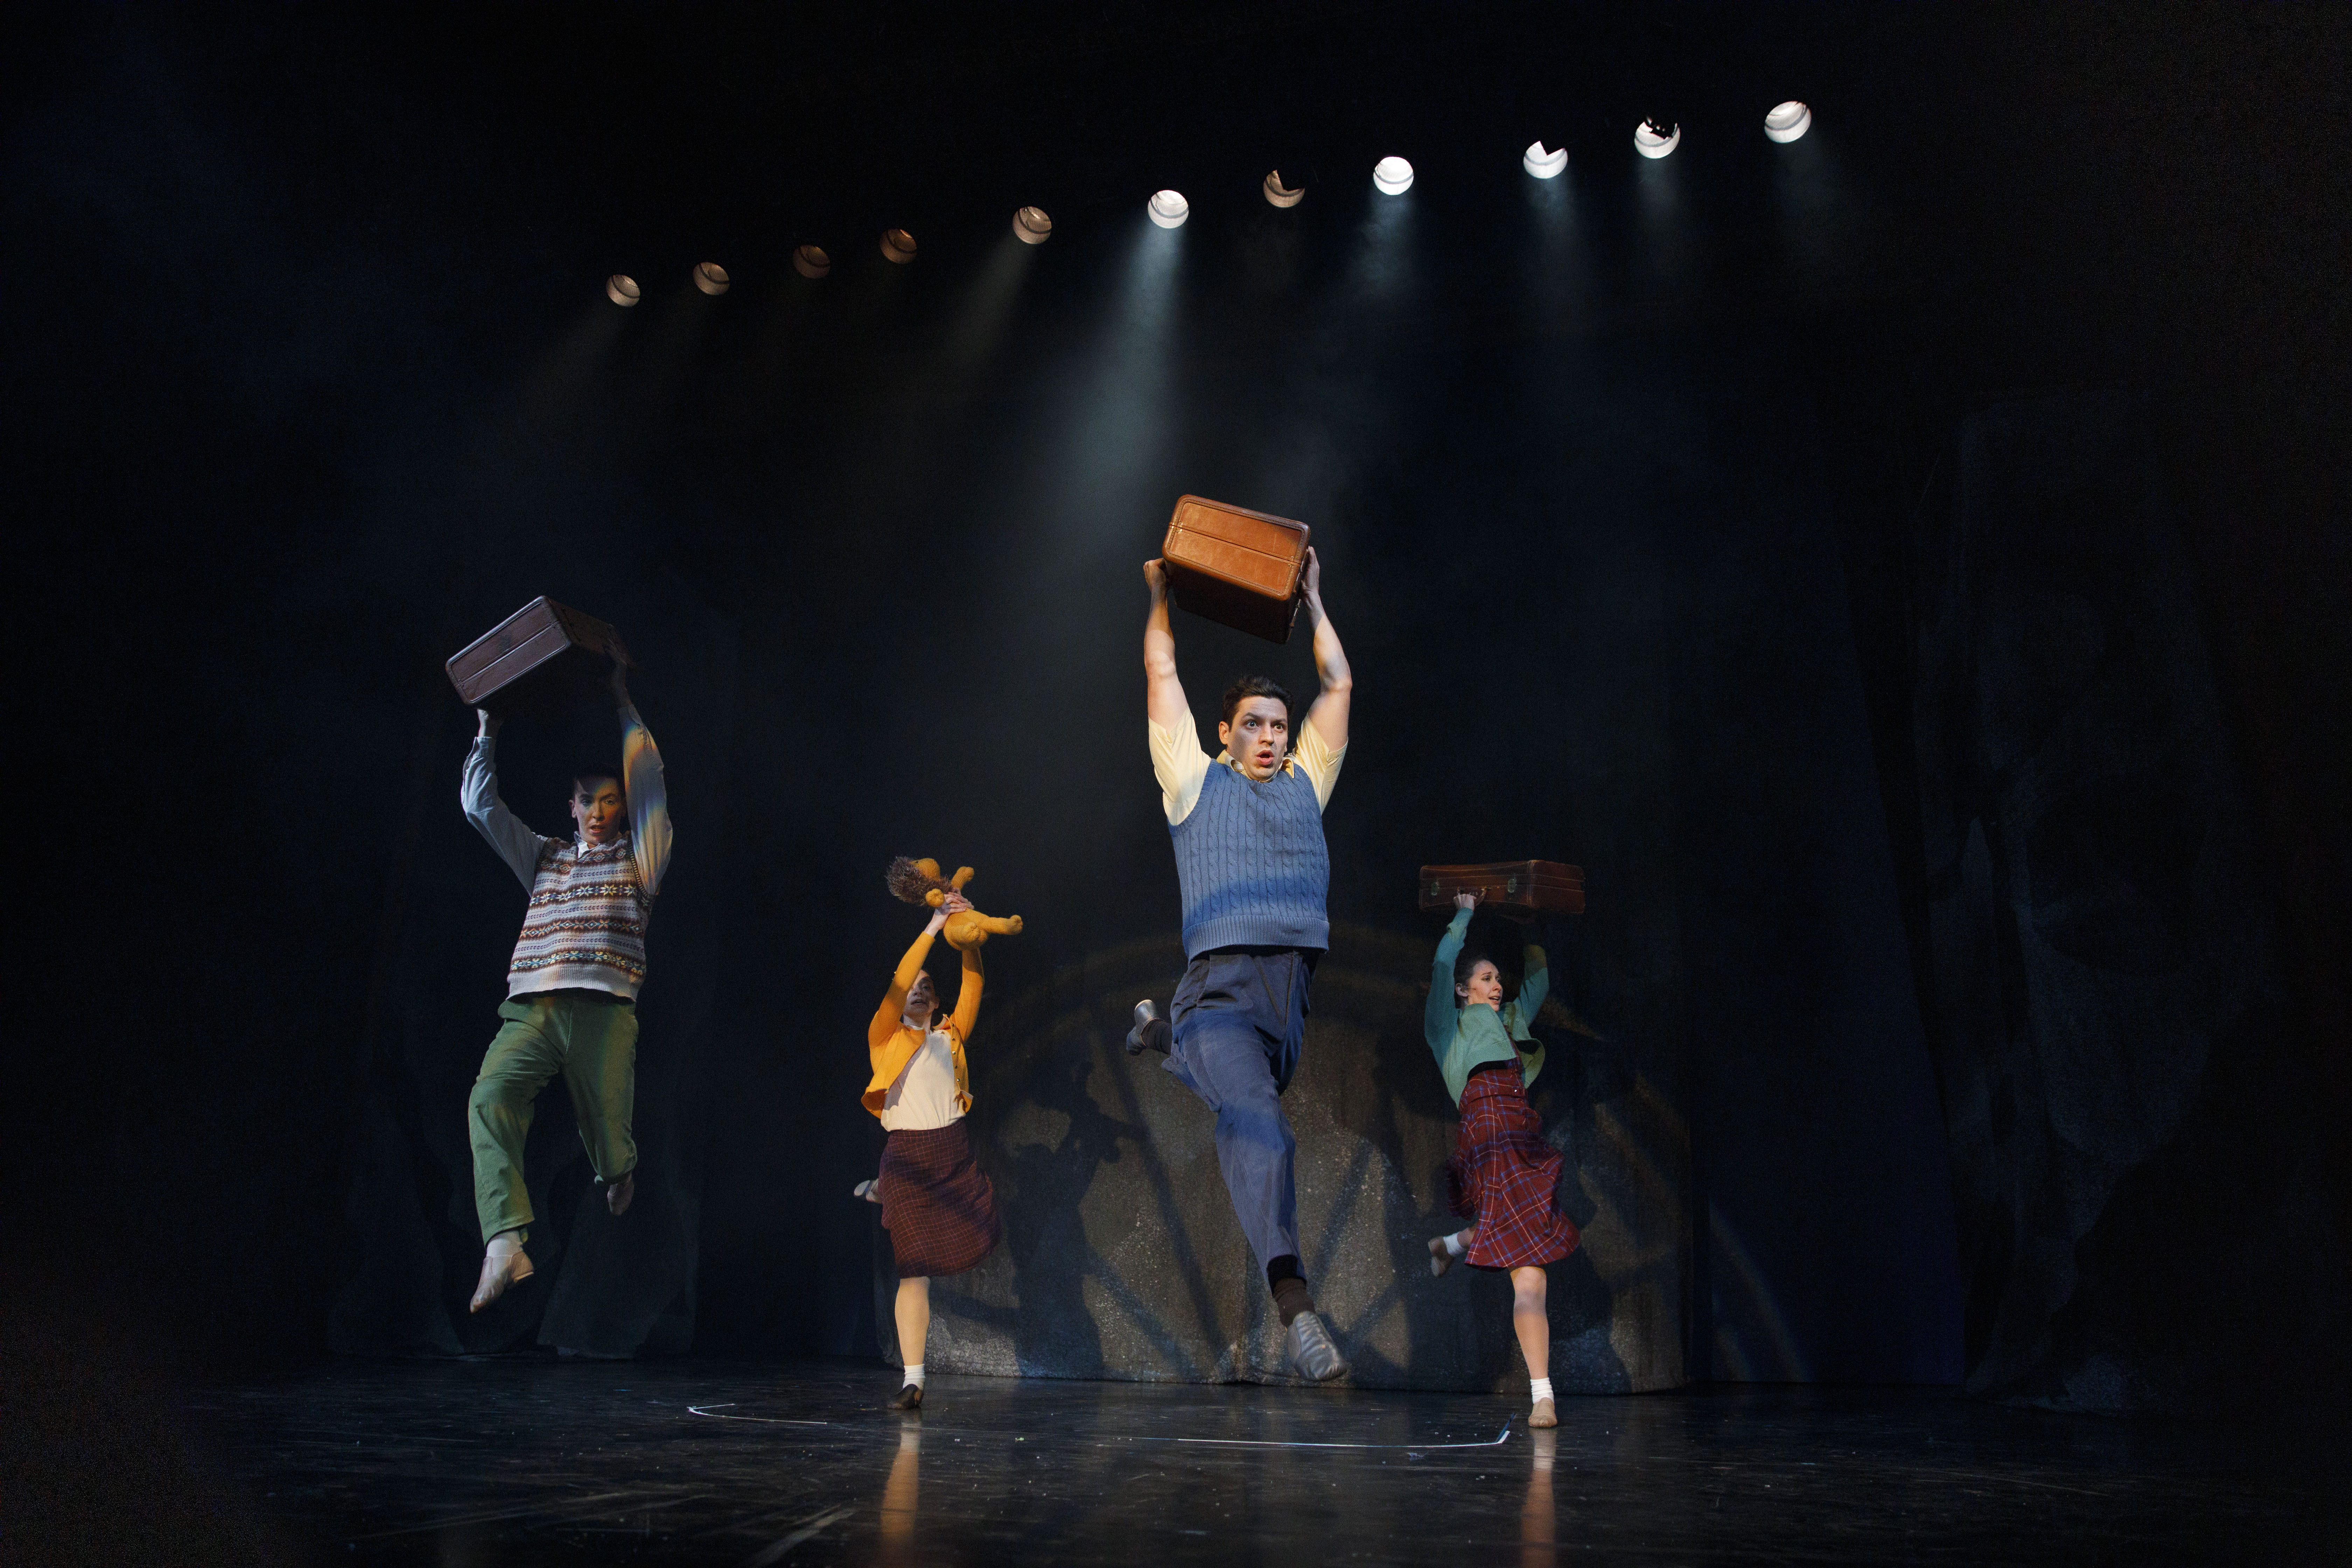 From left, Randy Snight as Peter Pevensie (dancer), Lexi Firestone as Lucy Pevensie (dancer), Ryan Sellers as Edmund Pevensie (dancer) and Sarah Laughland as Susan Pevensie (dancer).